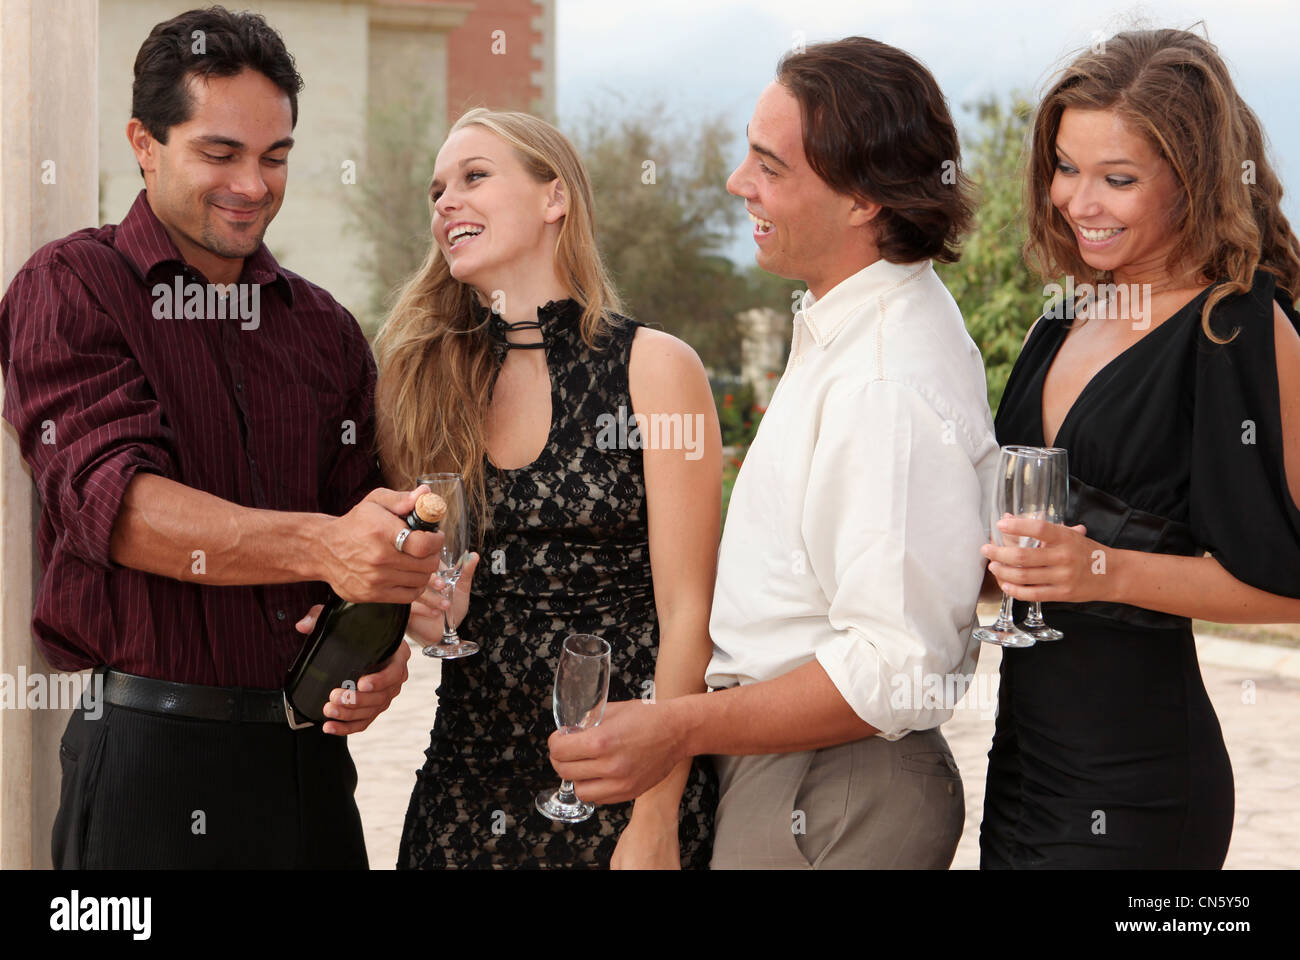 champagne party group - Stock Image